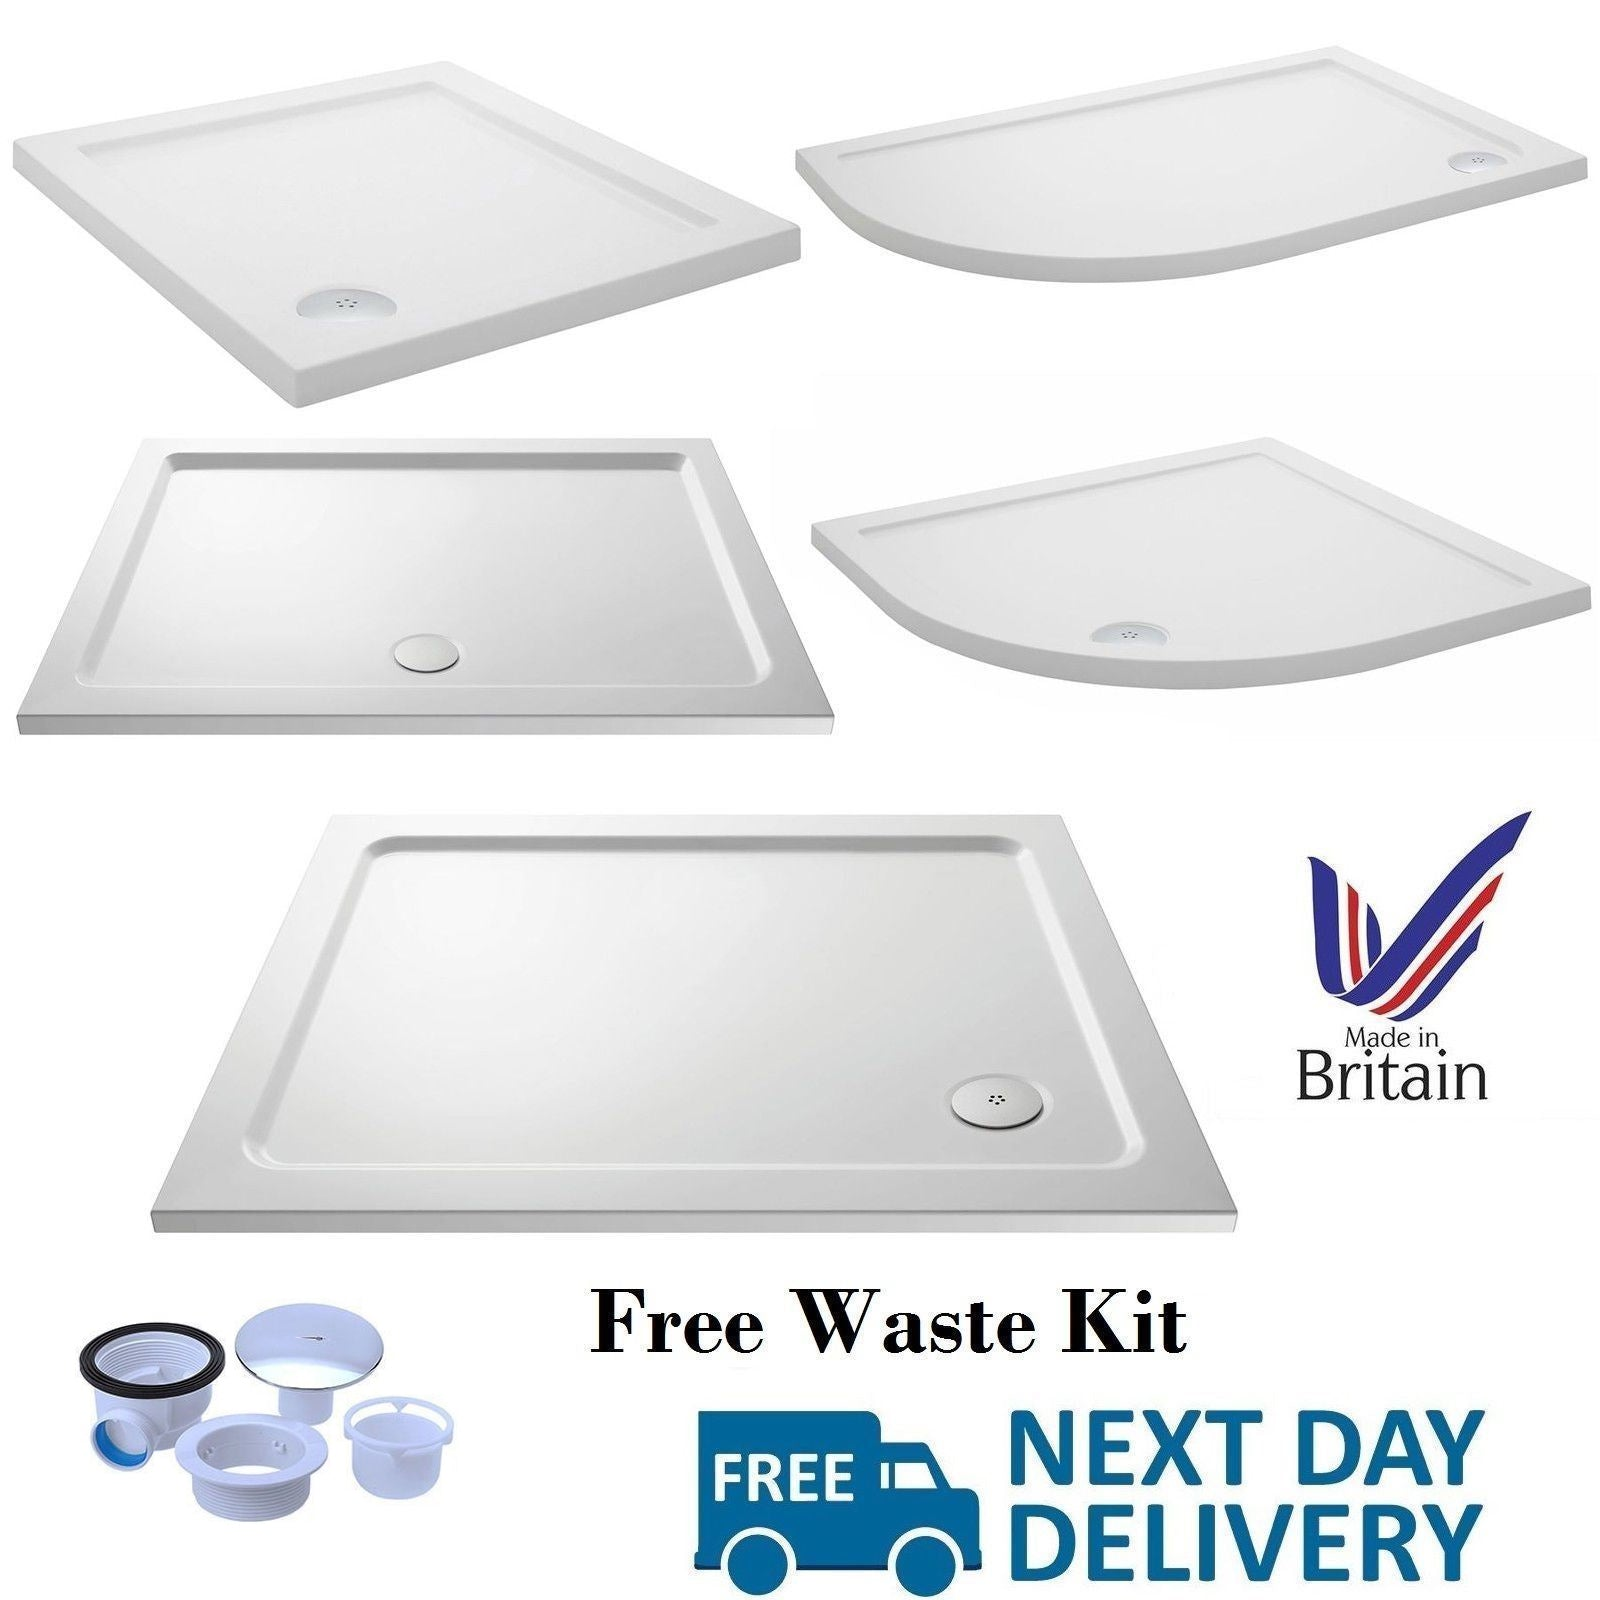 Stone shower tray range, free waste kit included